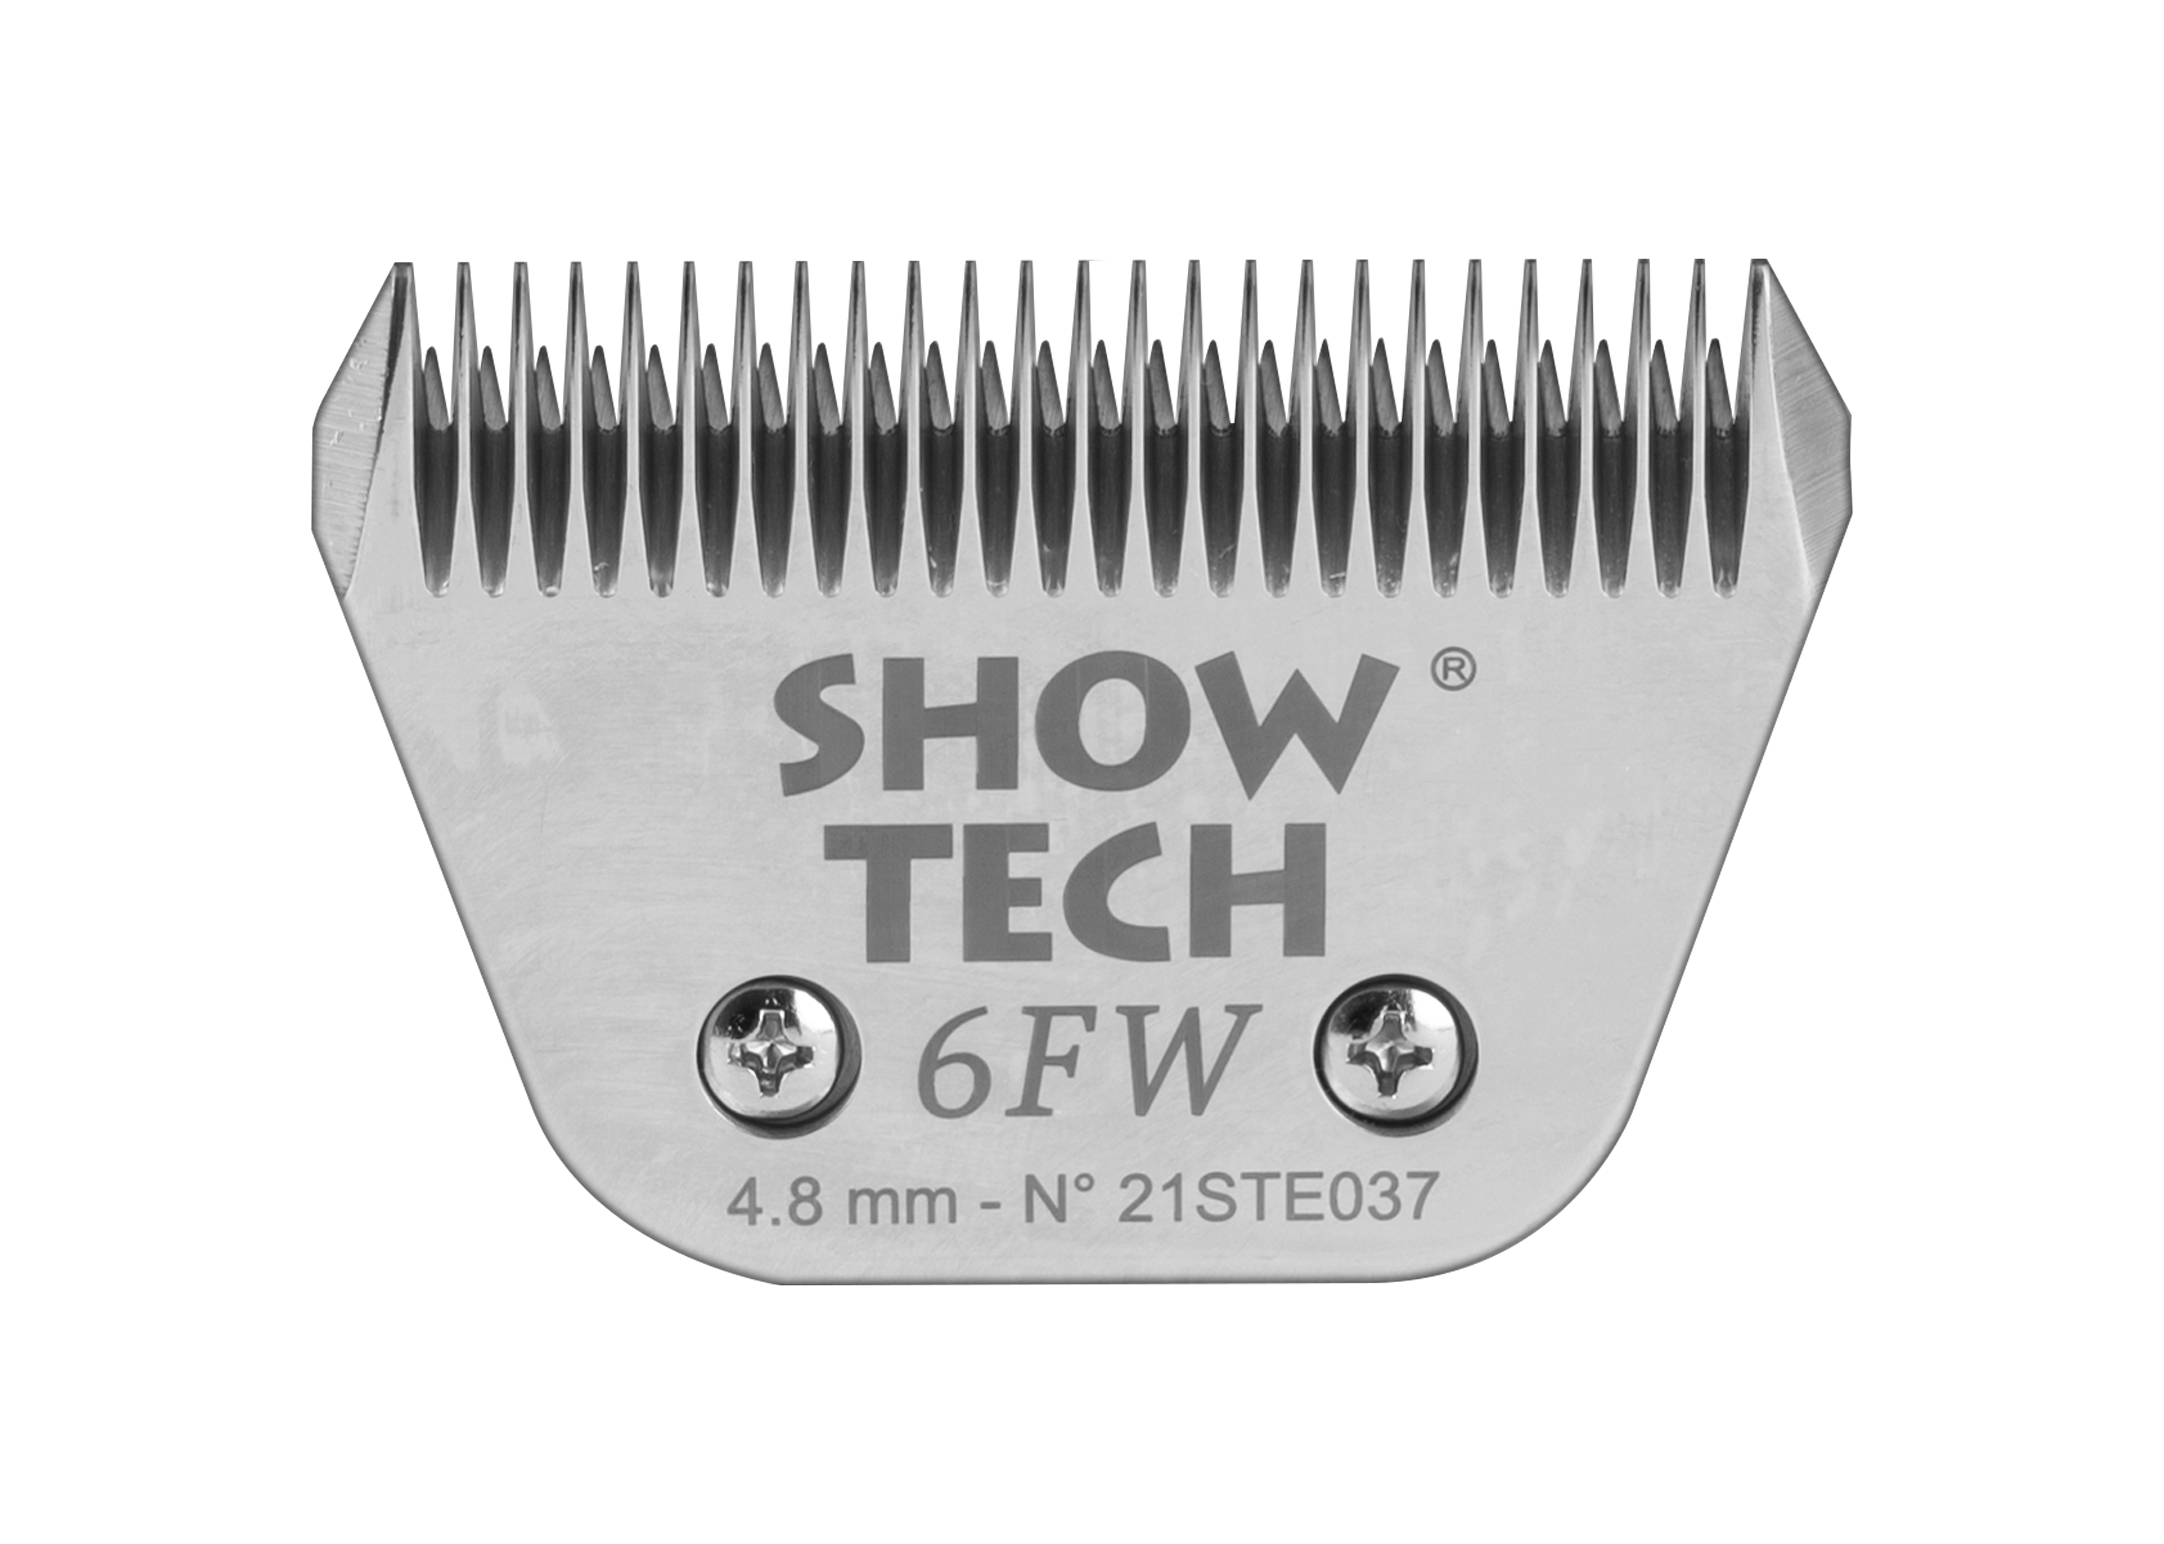 Show Tech Pro Blades snap-on Clipper Blade #6FW - 4,8mm